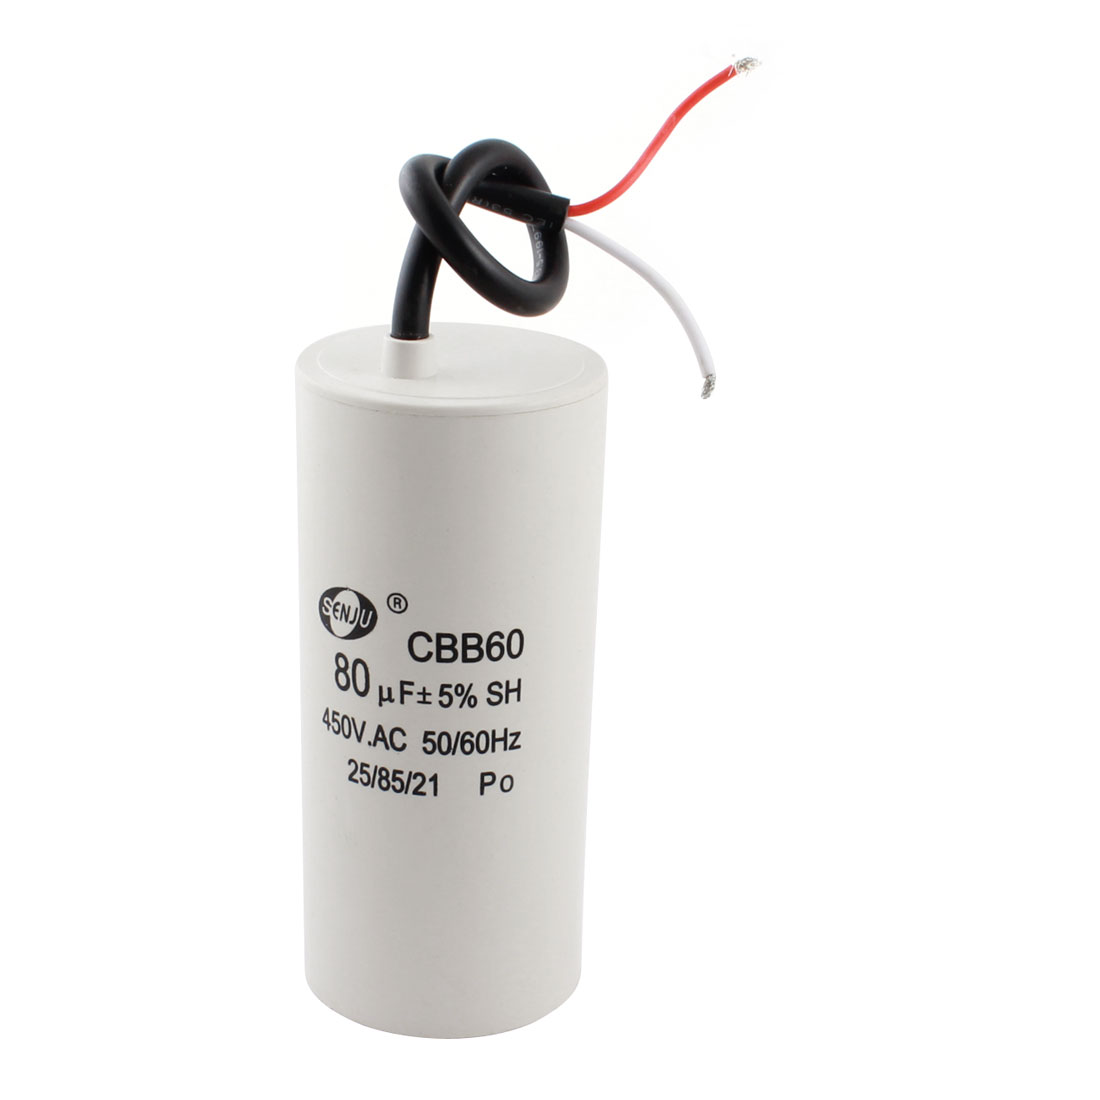 AC 450V 50/60Hz 80uF Polypropylene Film Capacitor for Washing Machine